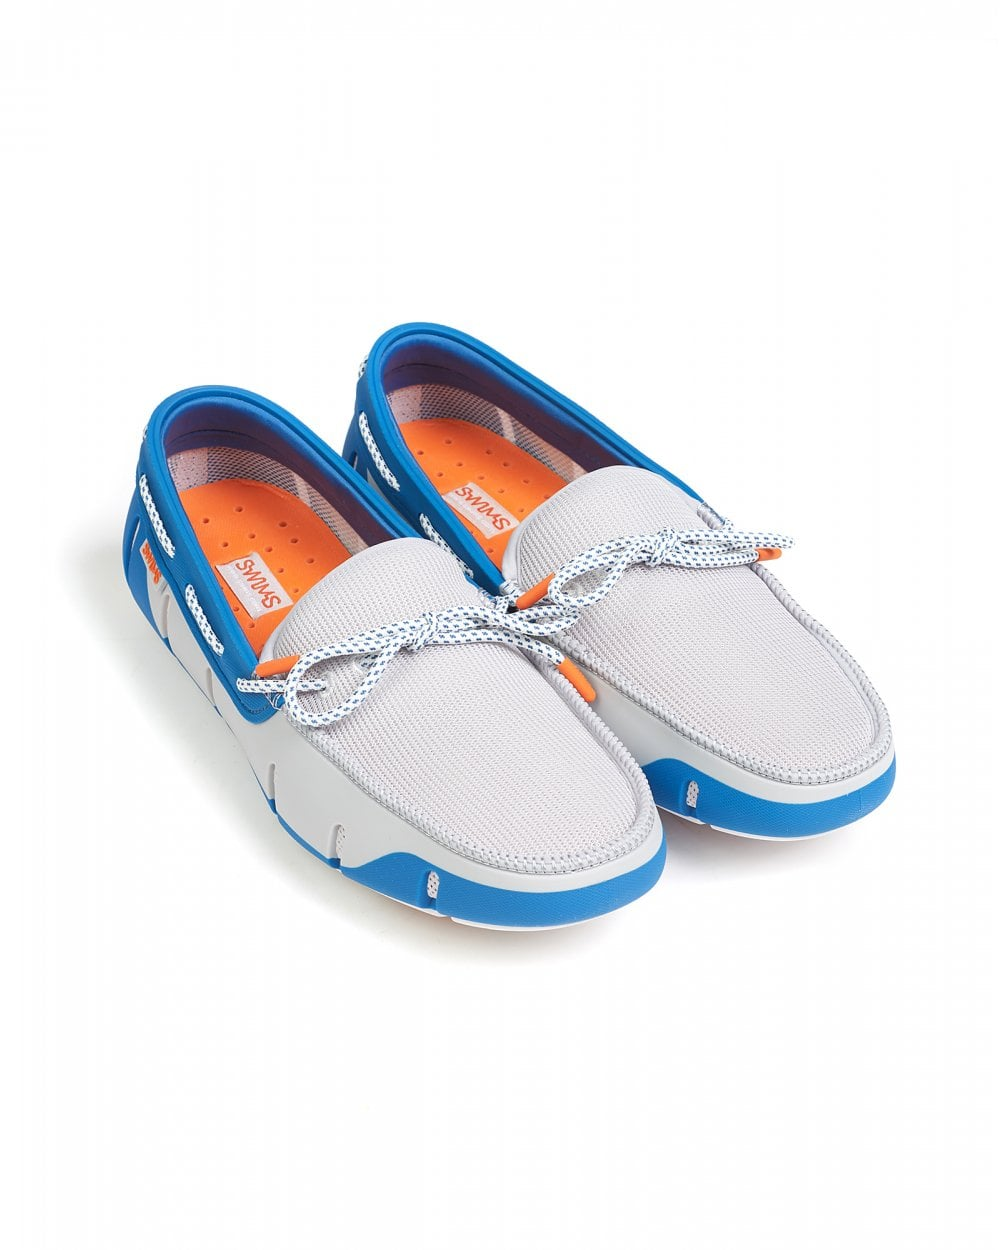 02036bdb2bd Swims Mens Seaport Blue and Alloy Shoes